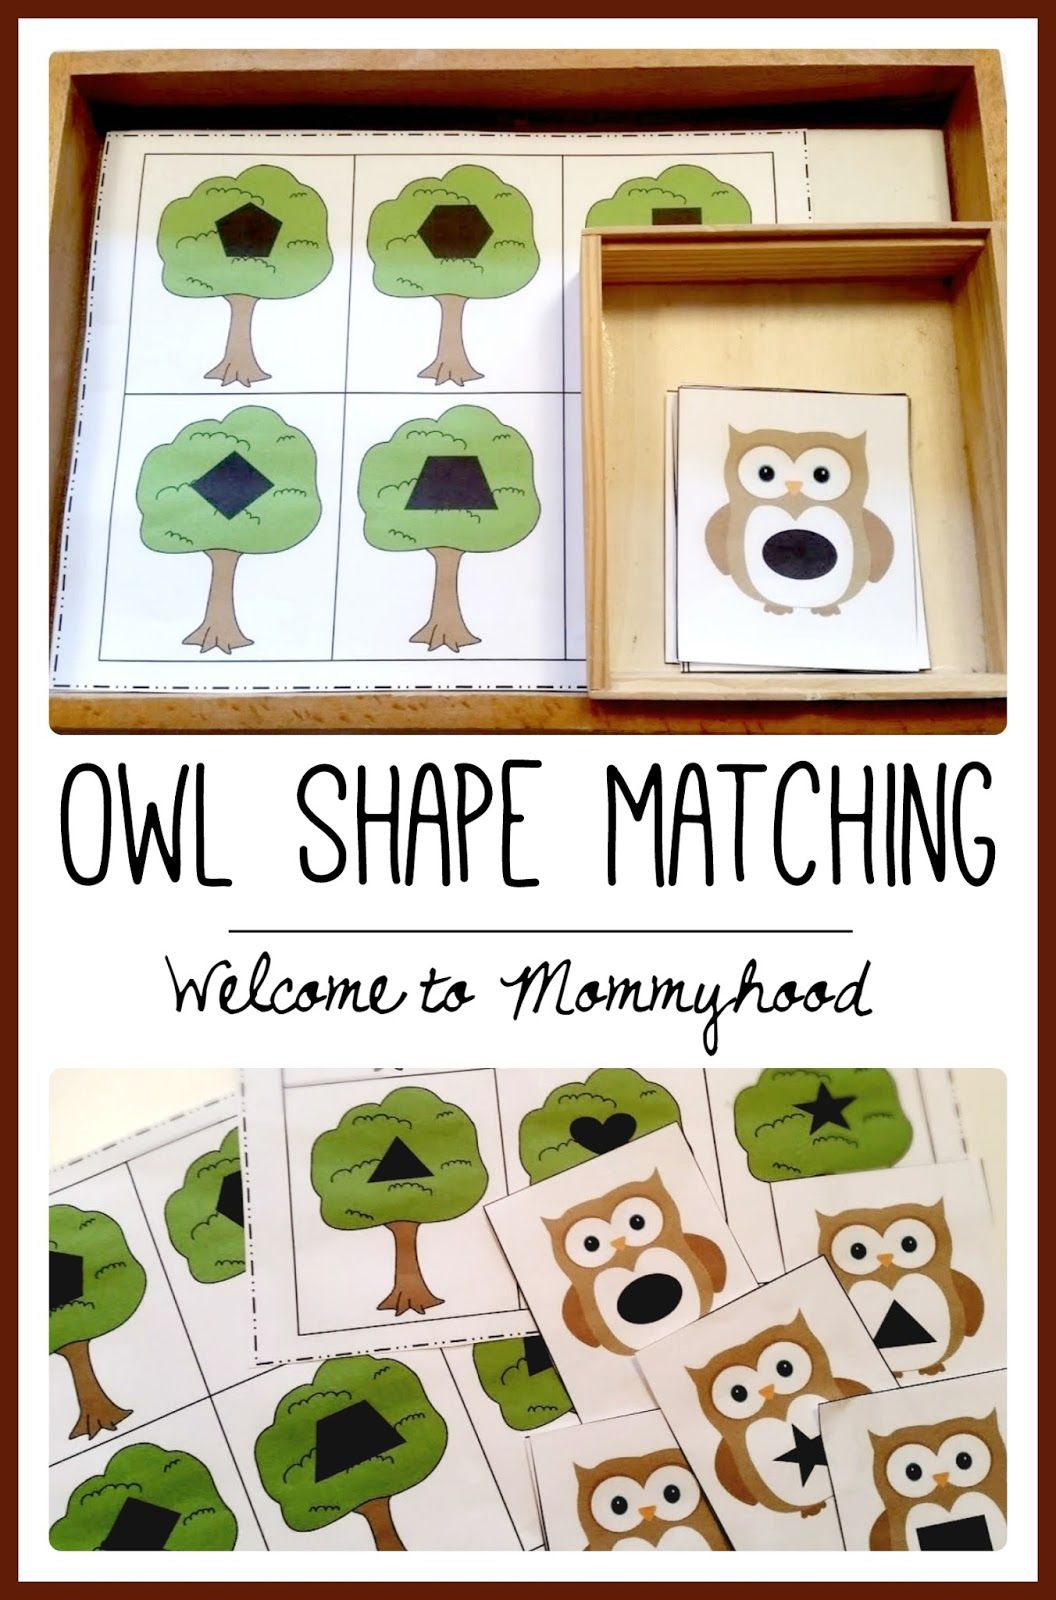 Printable color matching games for preschoolers - Montessori Inspired Animal Themed Activities And Printables For Toddlers And Preschoolers Owl Shape Matching